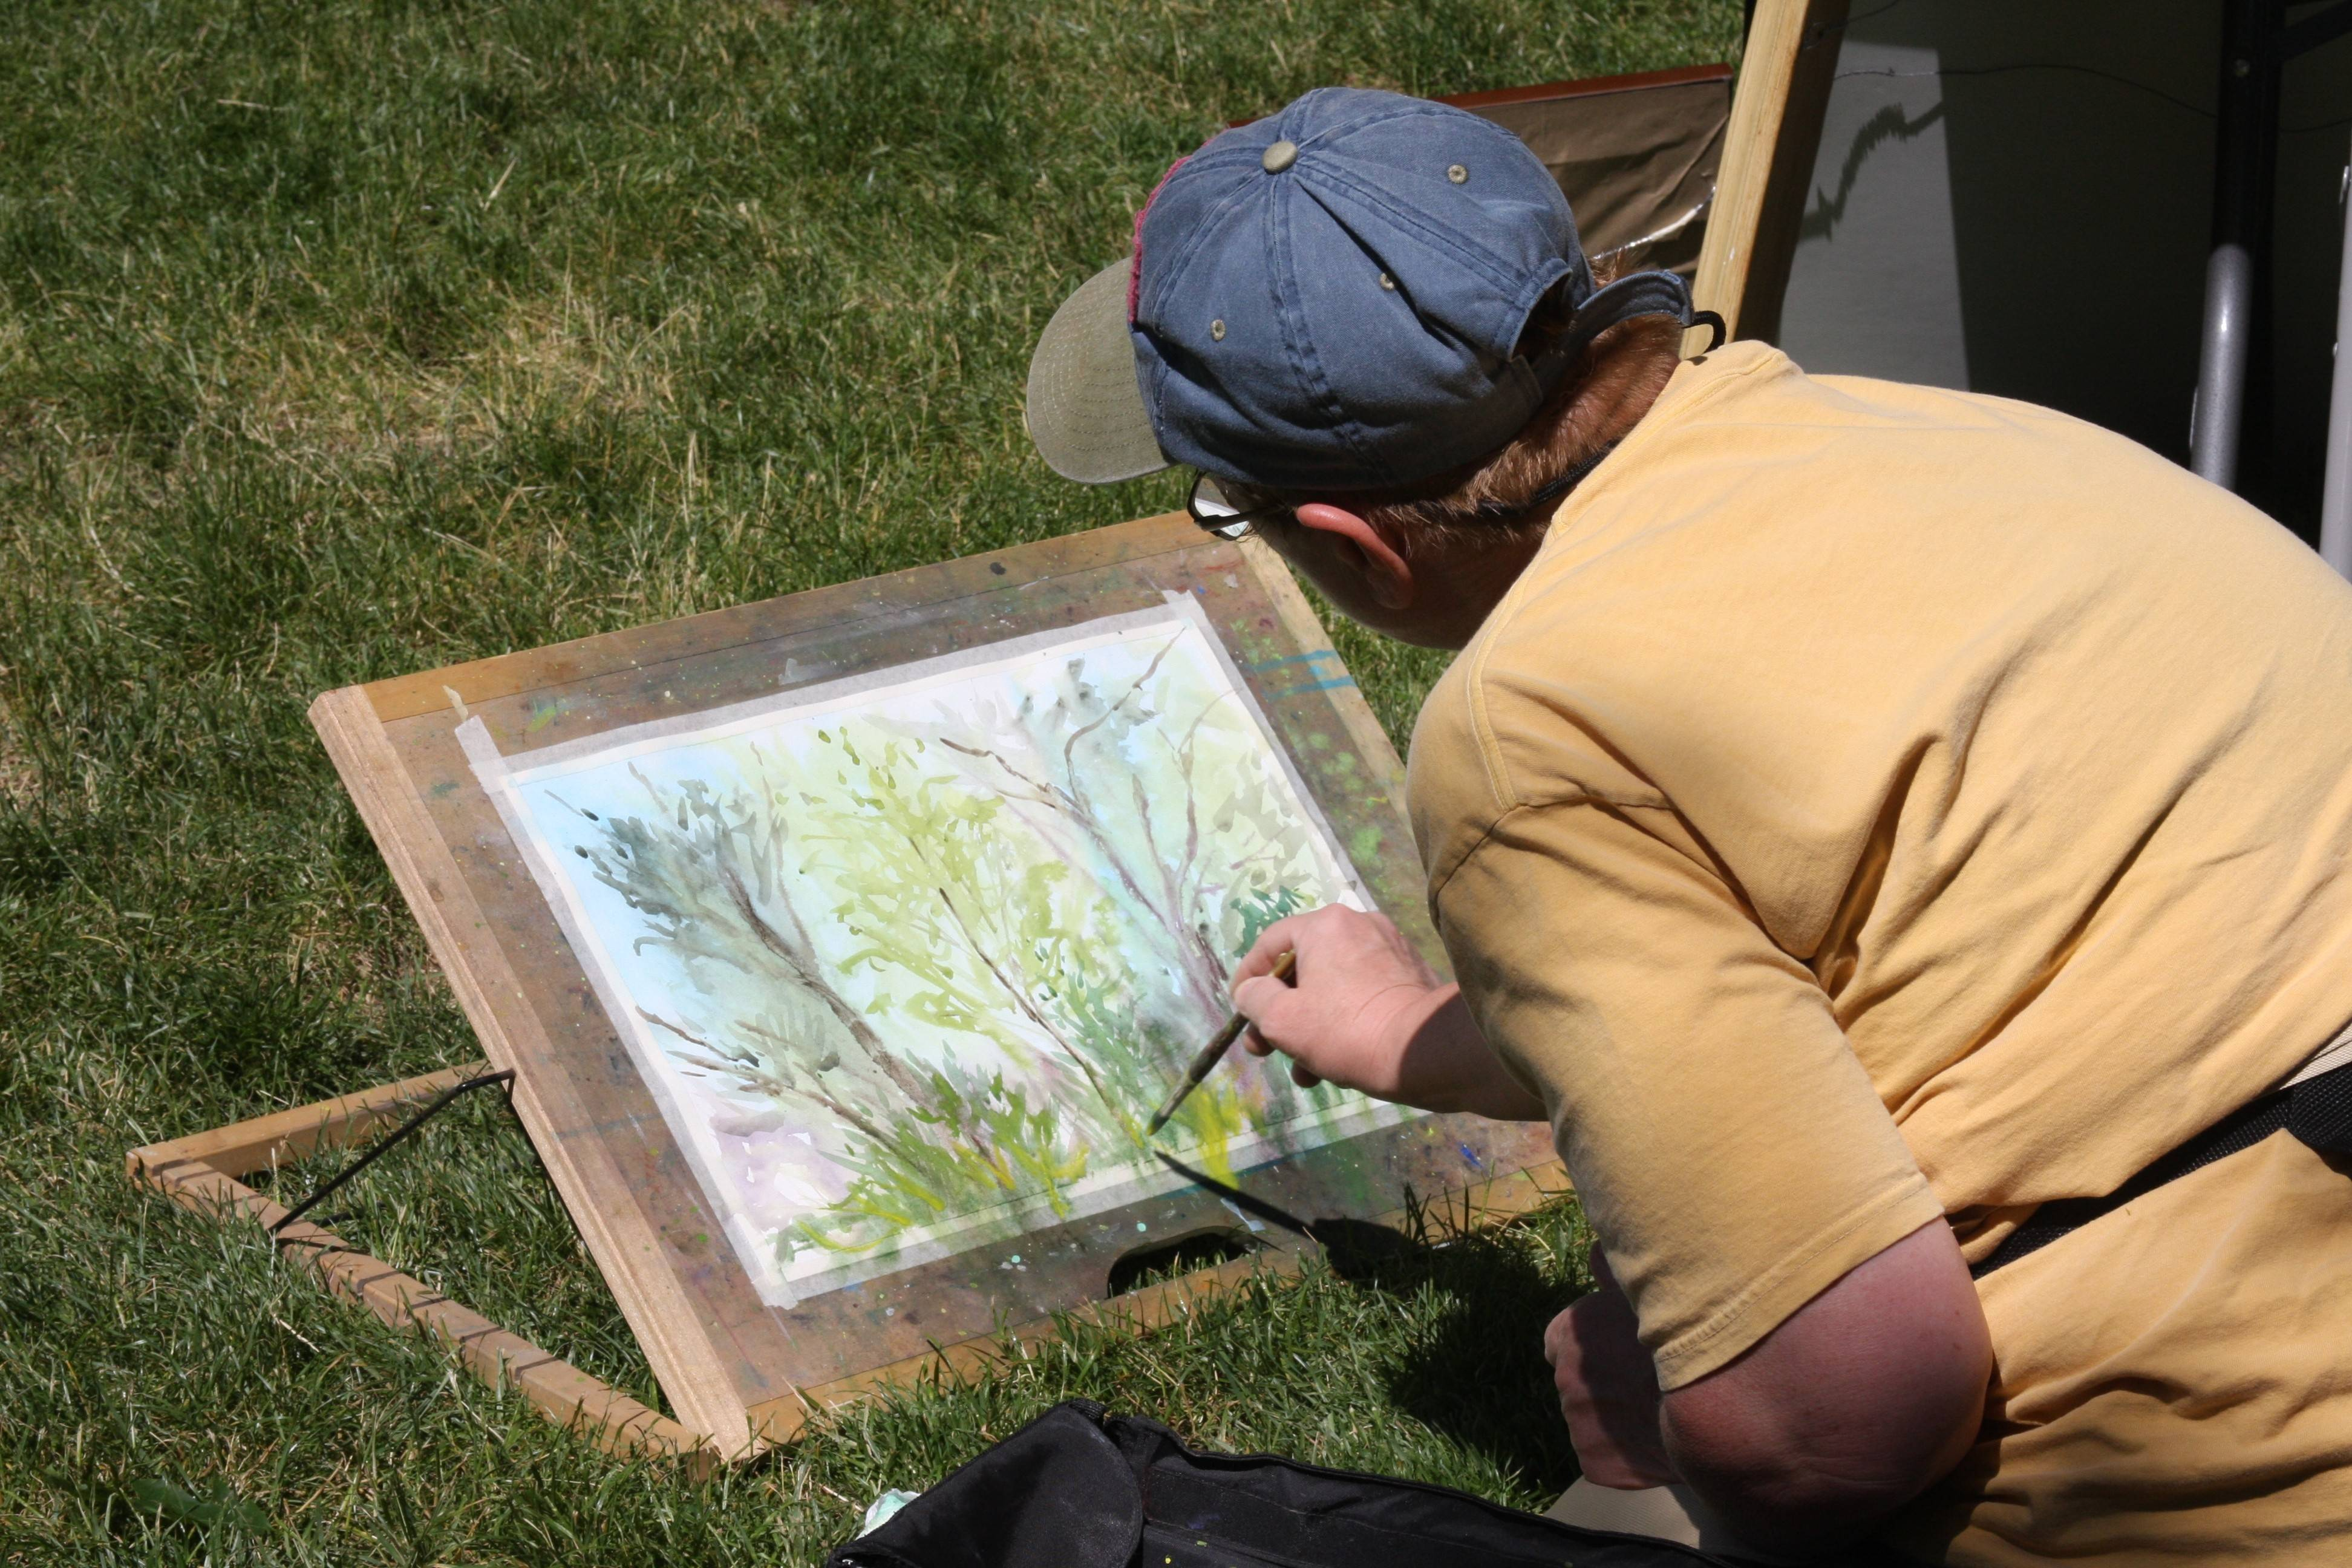 Artists will show their work and demonstrate their techniques in Artist Lane at the Dandelion Wine Fine Arts Festival in Waukegan.